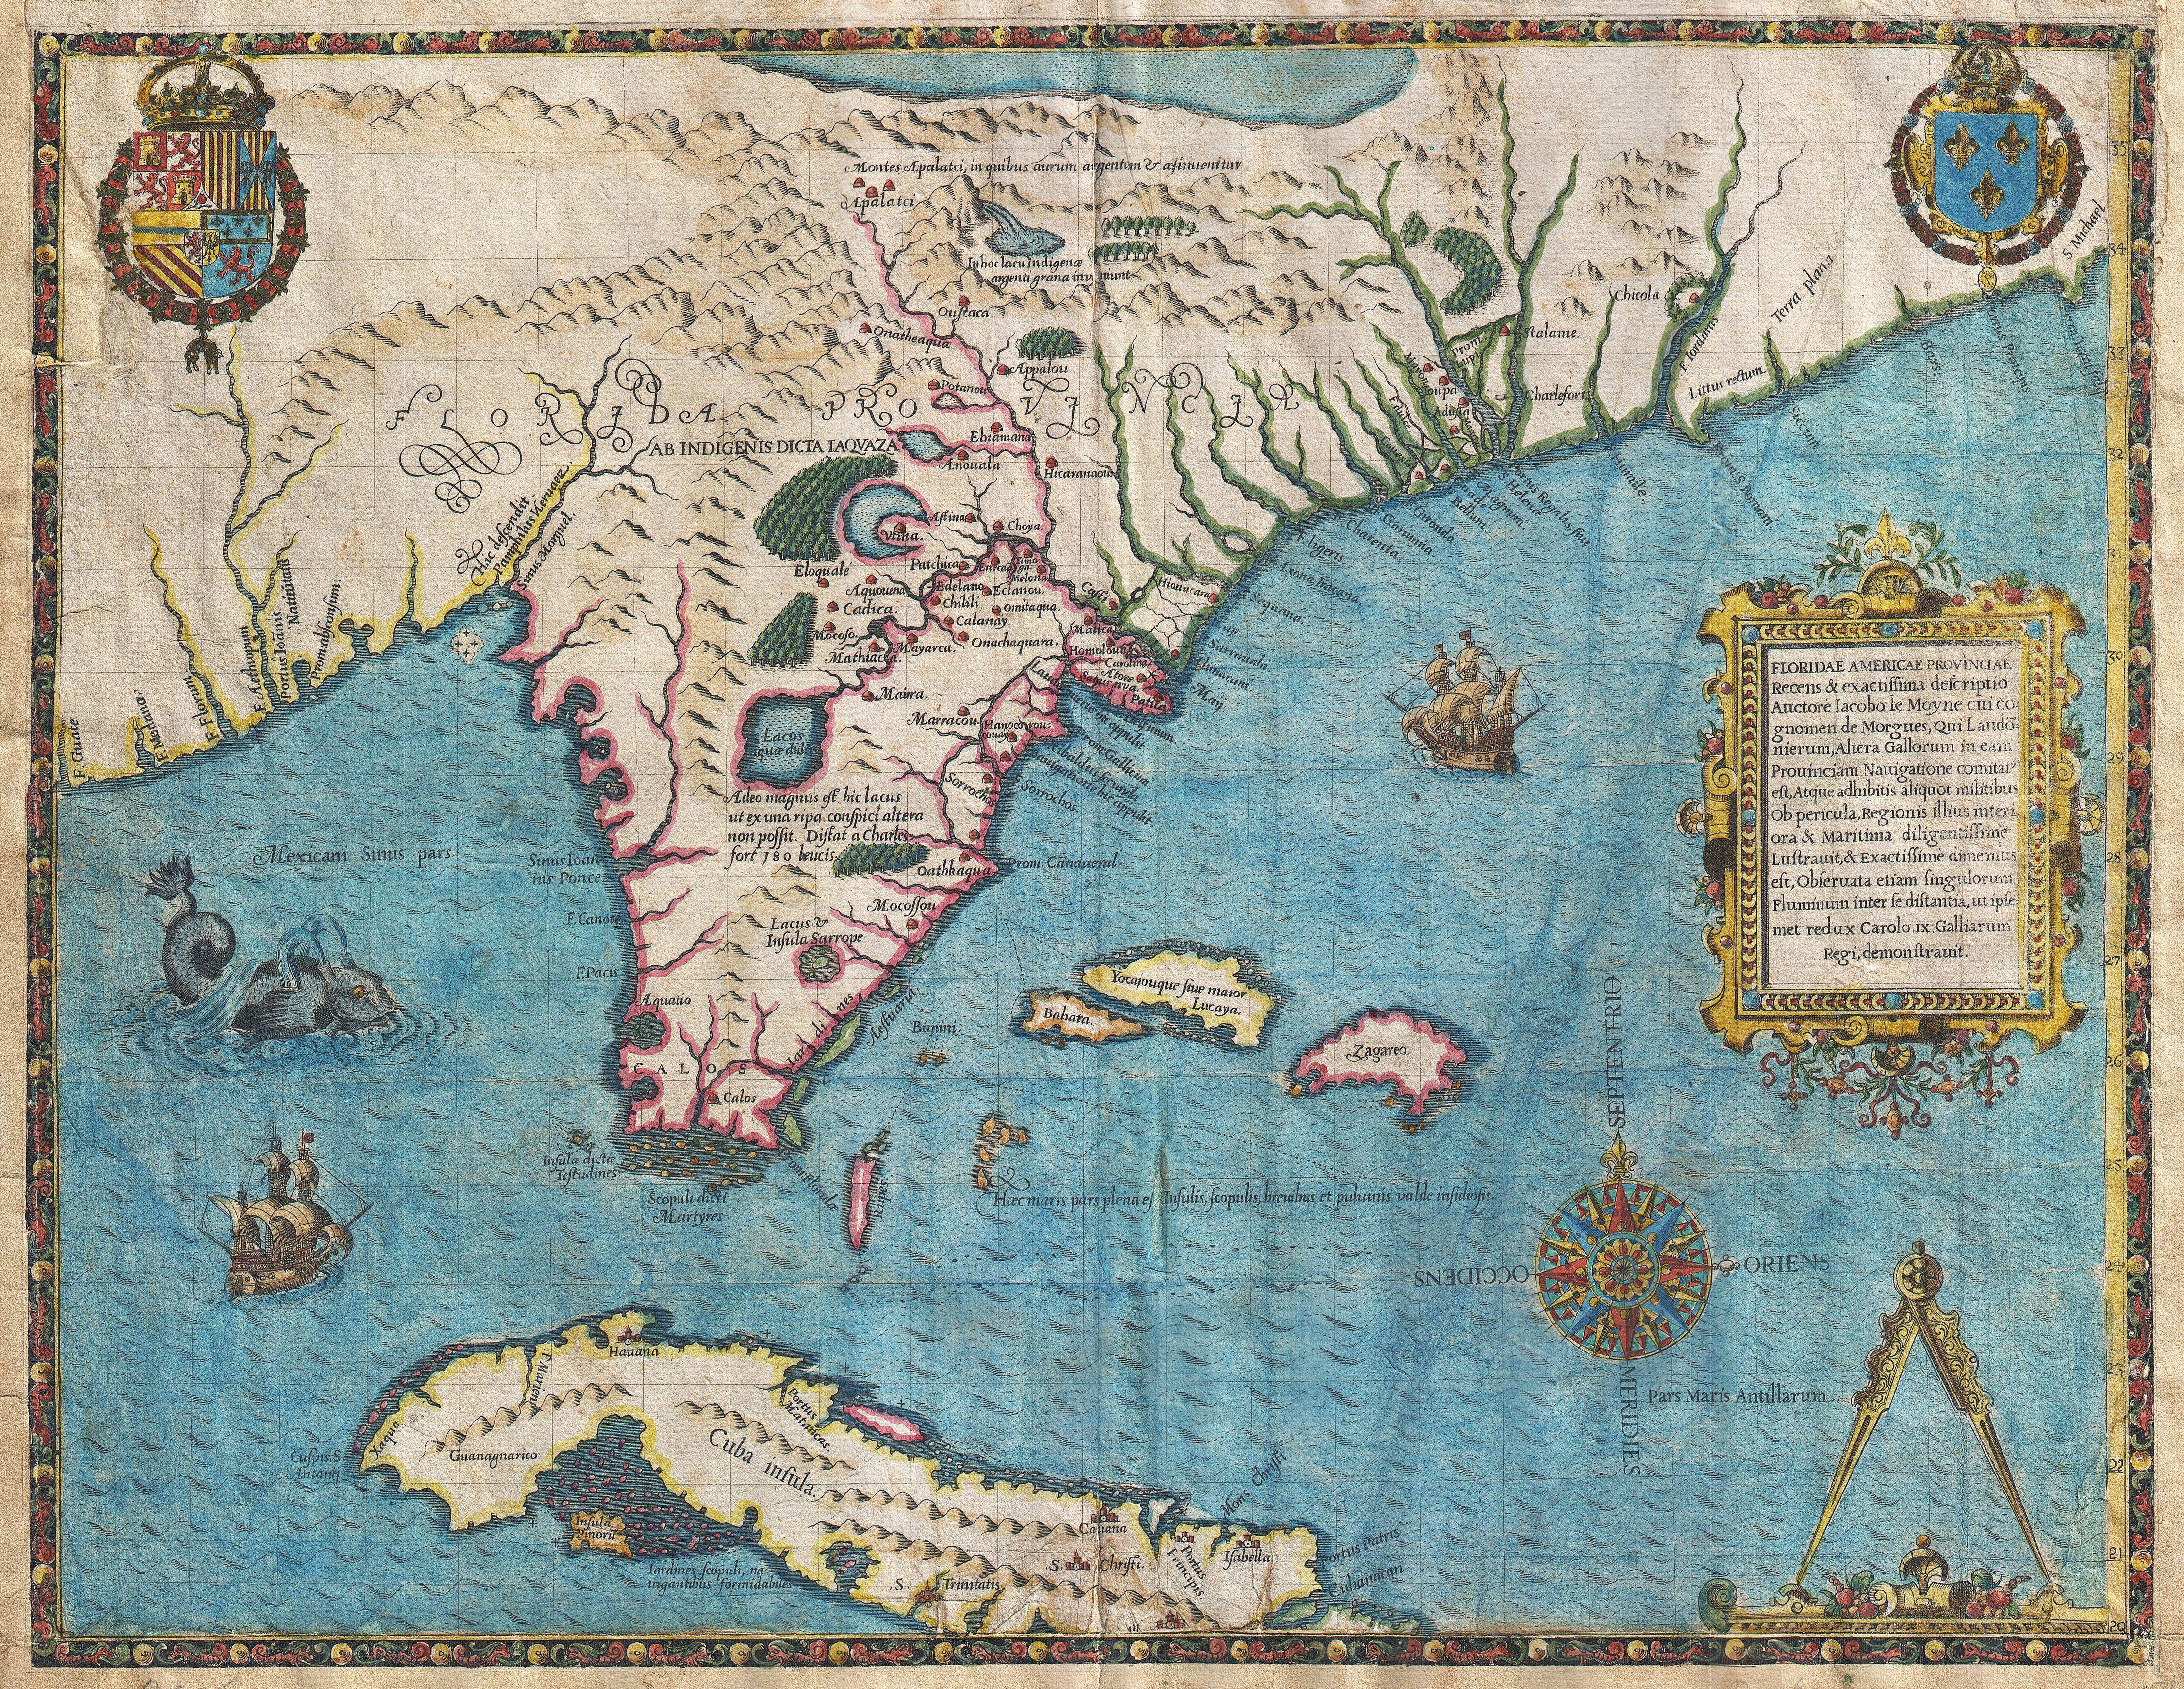 Fasciculus:1591 De Bry and Le Moyne Map of Florida and Cuba - Geographicus -